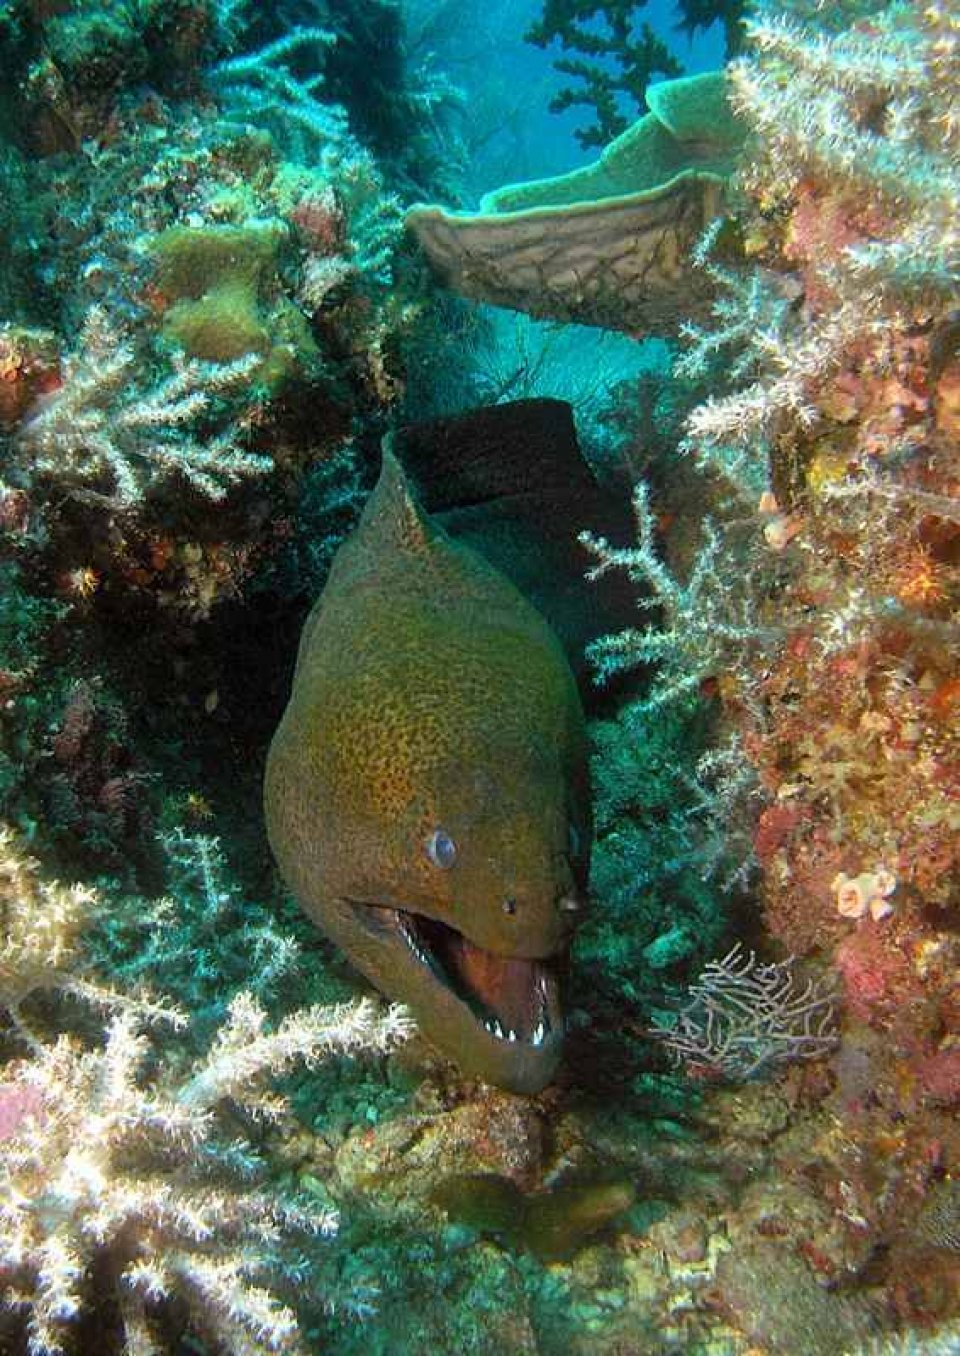 Giant Morray Eel at Chebeh Island dive site